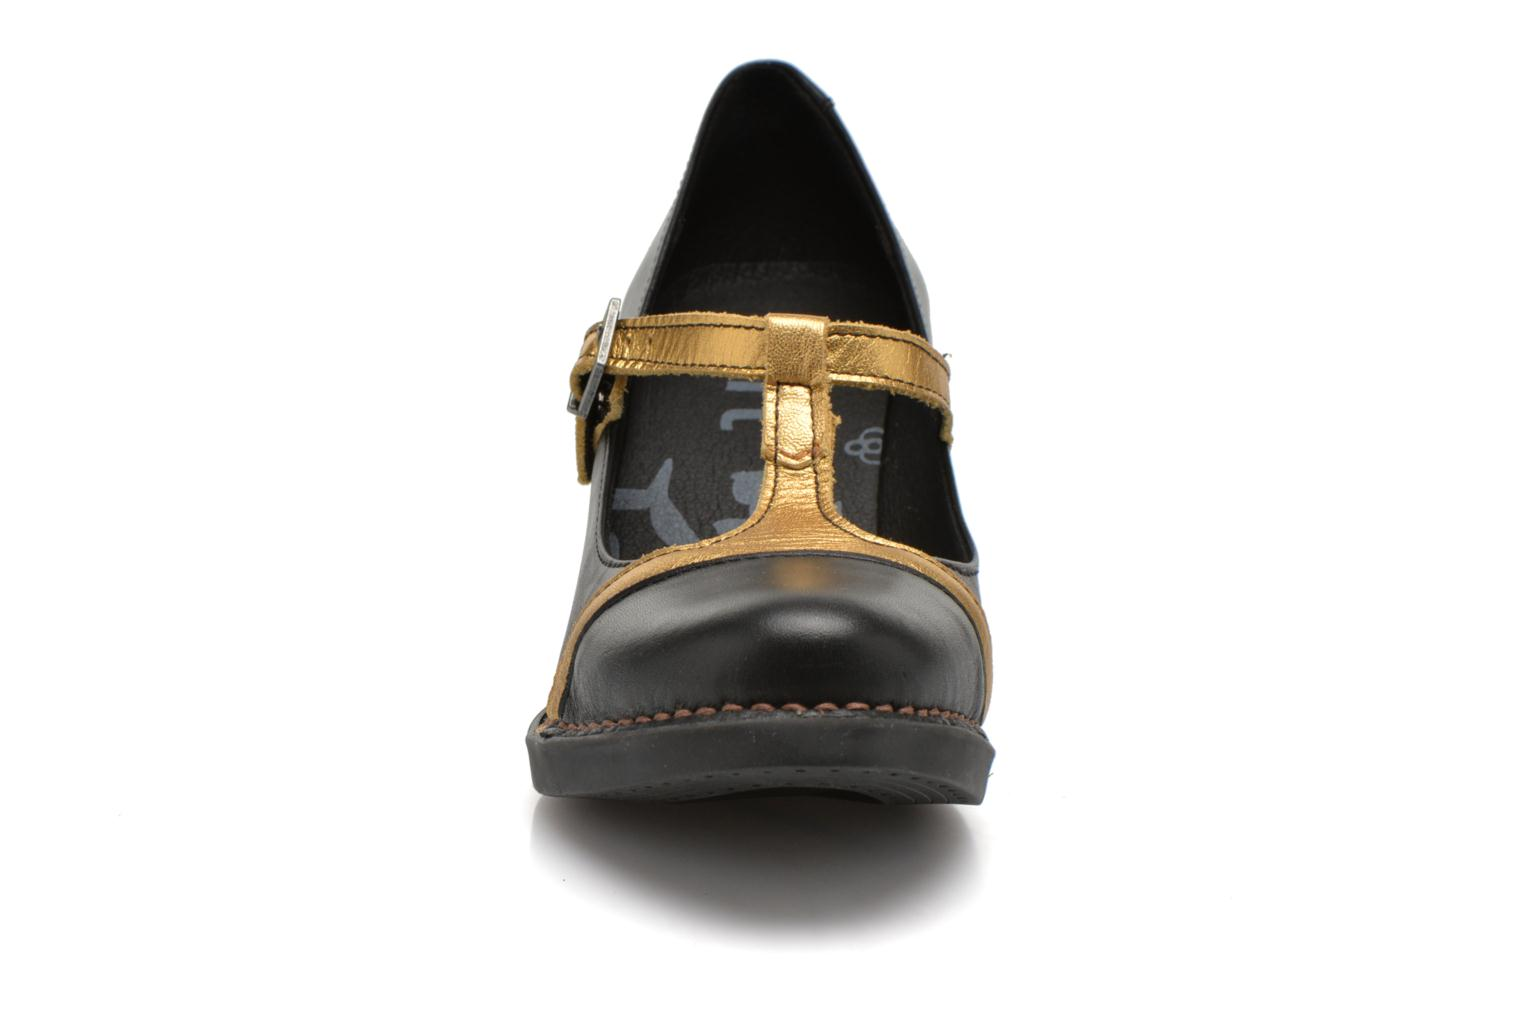 Harlem 925 black-gold